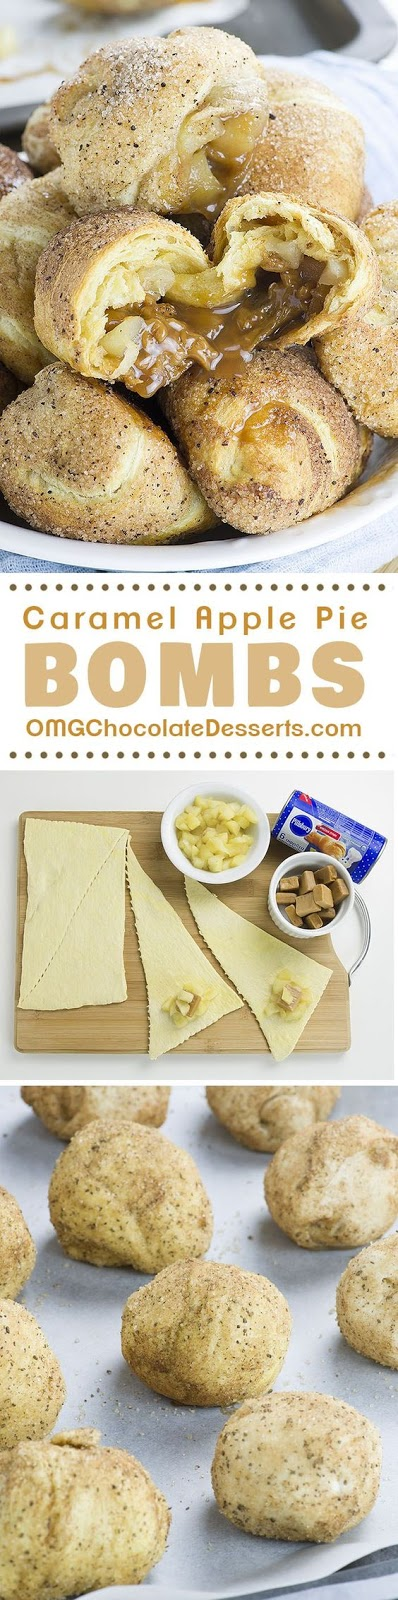 These awesome Caramel Apple Pie Bombs are the easiest dessert recipe (or at least Apple pie recipe) you've ever made and they are insanely GOOD! Snickerdoodle crescent rolls loaded with apple pie filling and caramel…WOW !!! I'm sure you are drooling right now over these yummy bombs!